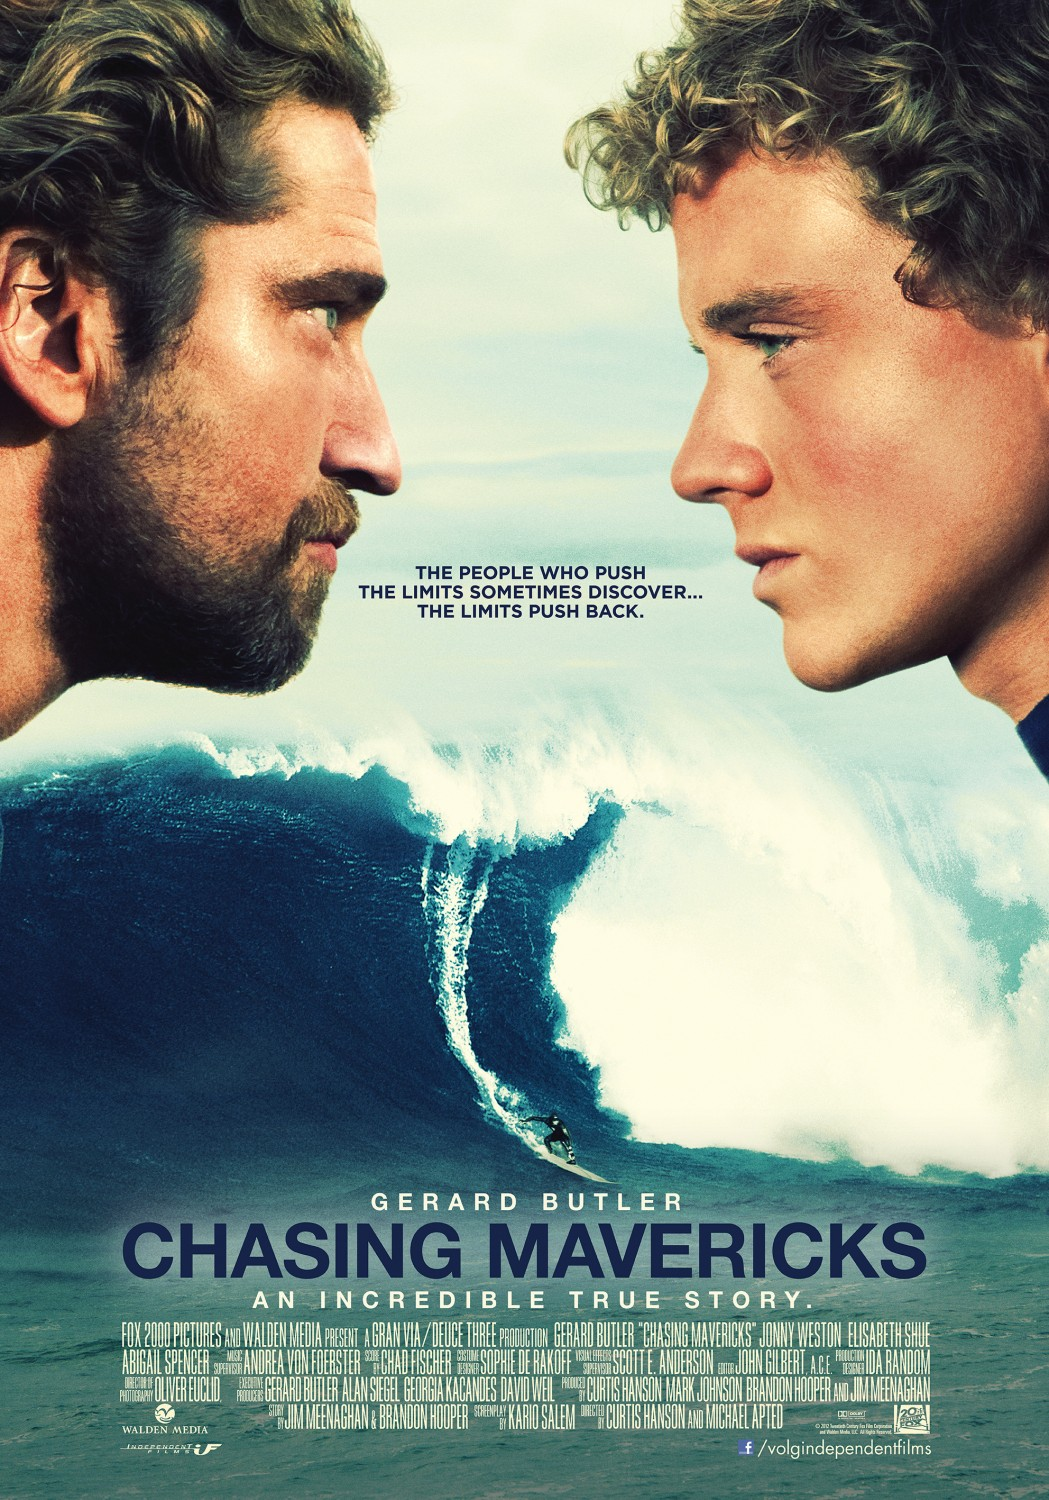 Extra Large Movie Poster Image for Chasing Mavericks